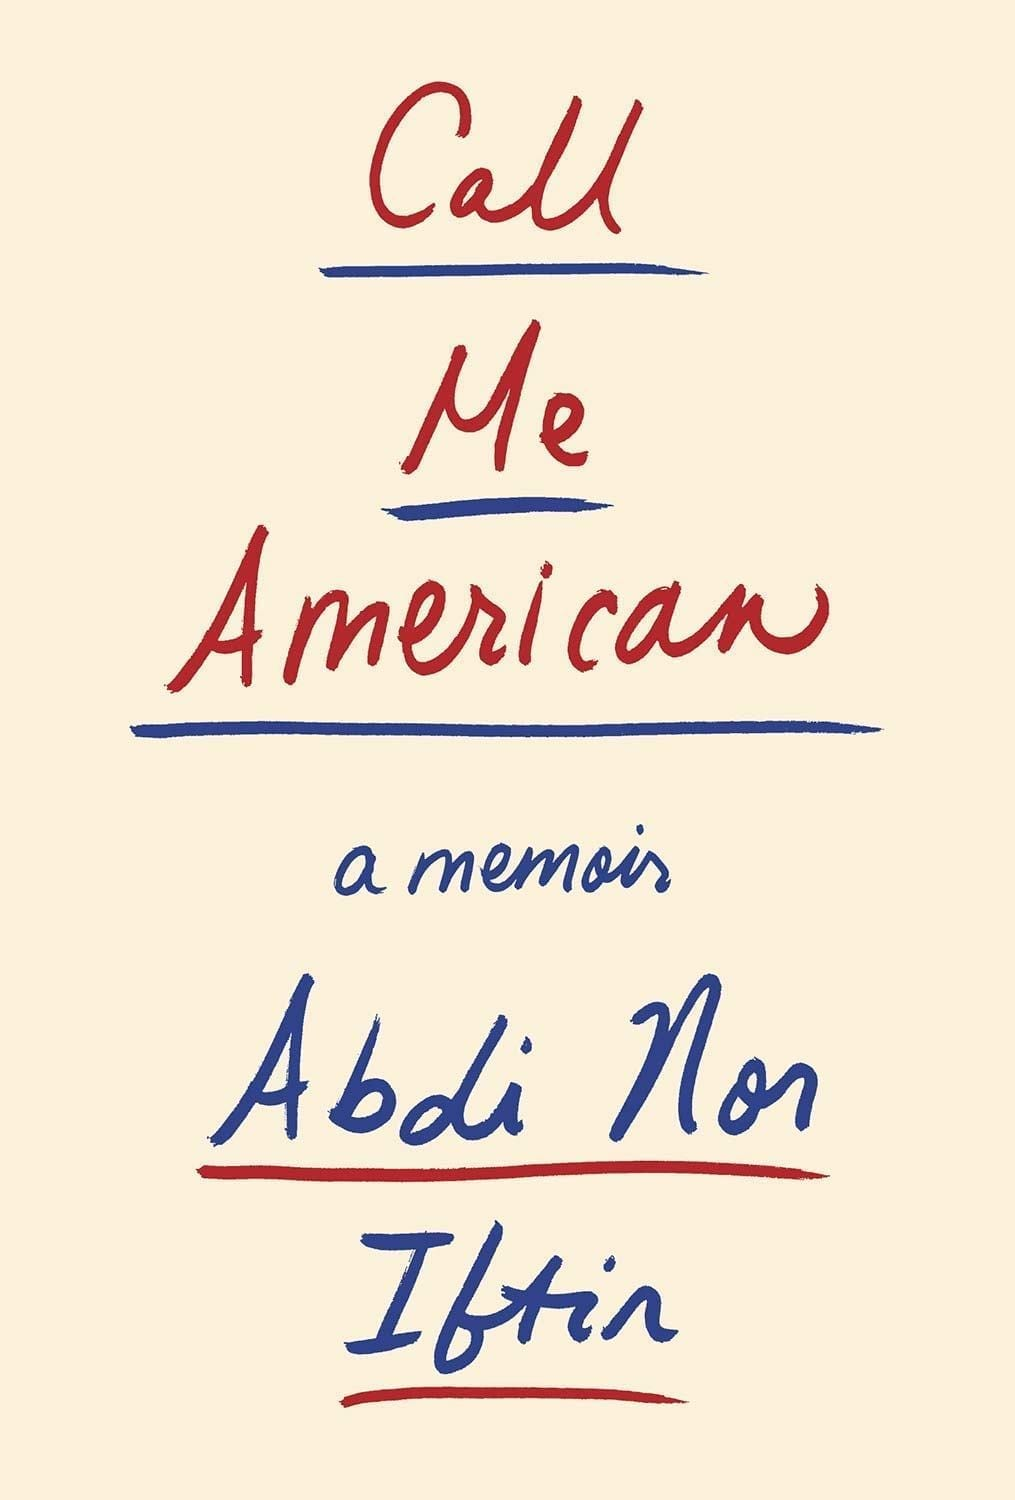 Call Me American – A Somali man's story of growing up in a war zone